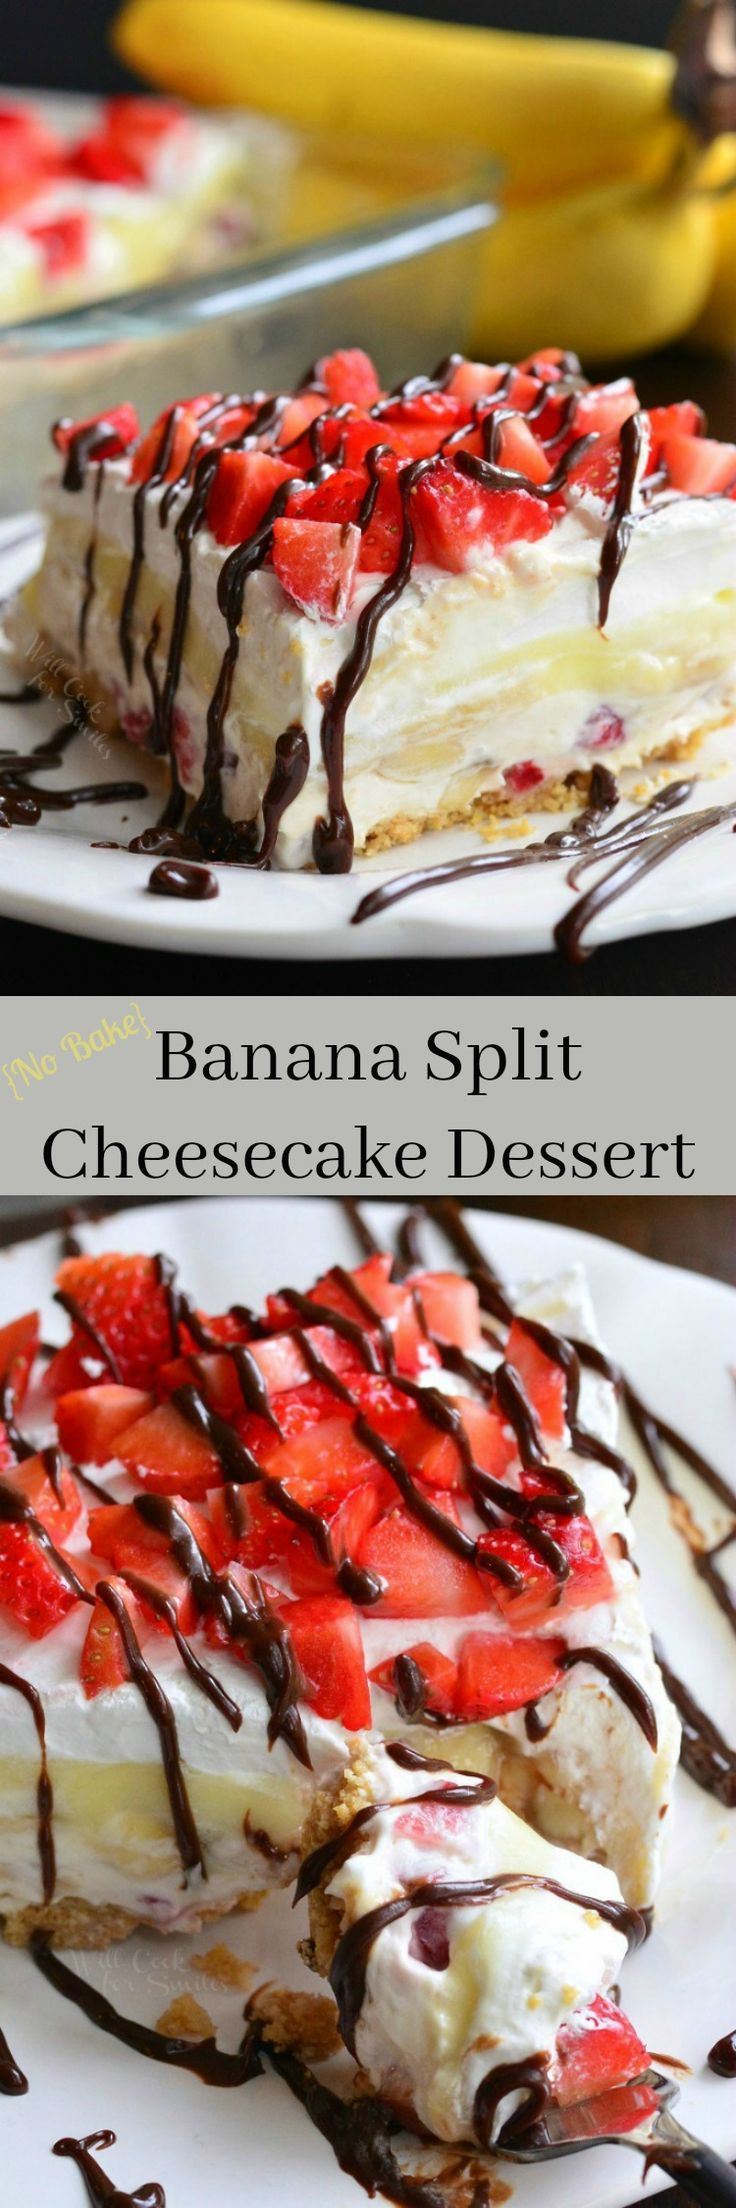 {No Bake} Banana Split Layered Cheesecake Dessert! Layers of graham cracker crumbs, strawberry and banana filled smooth cheesecake, banana pudding, and whipped topping.